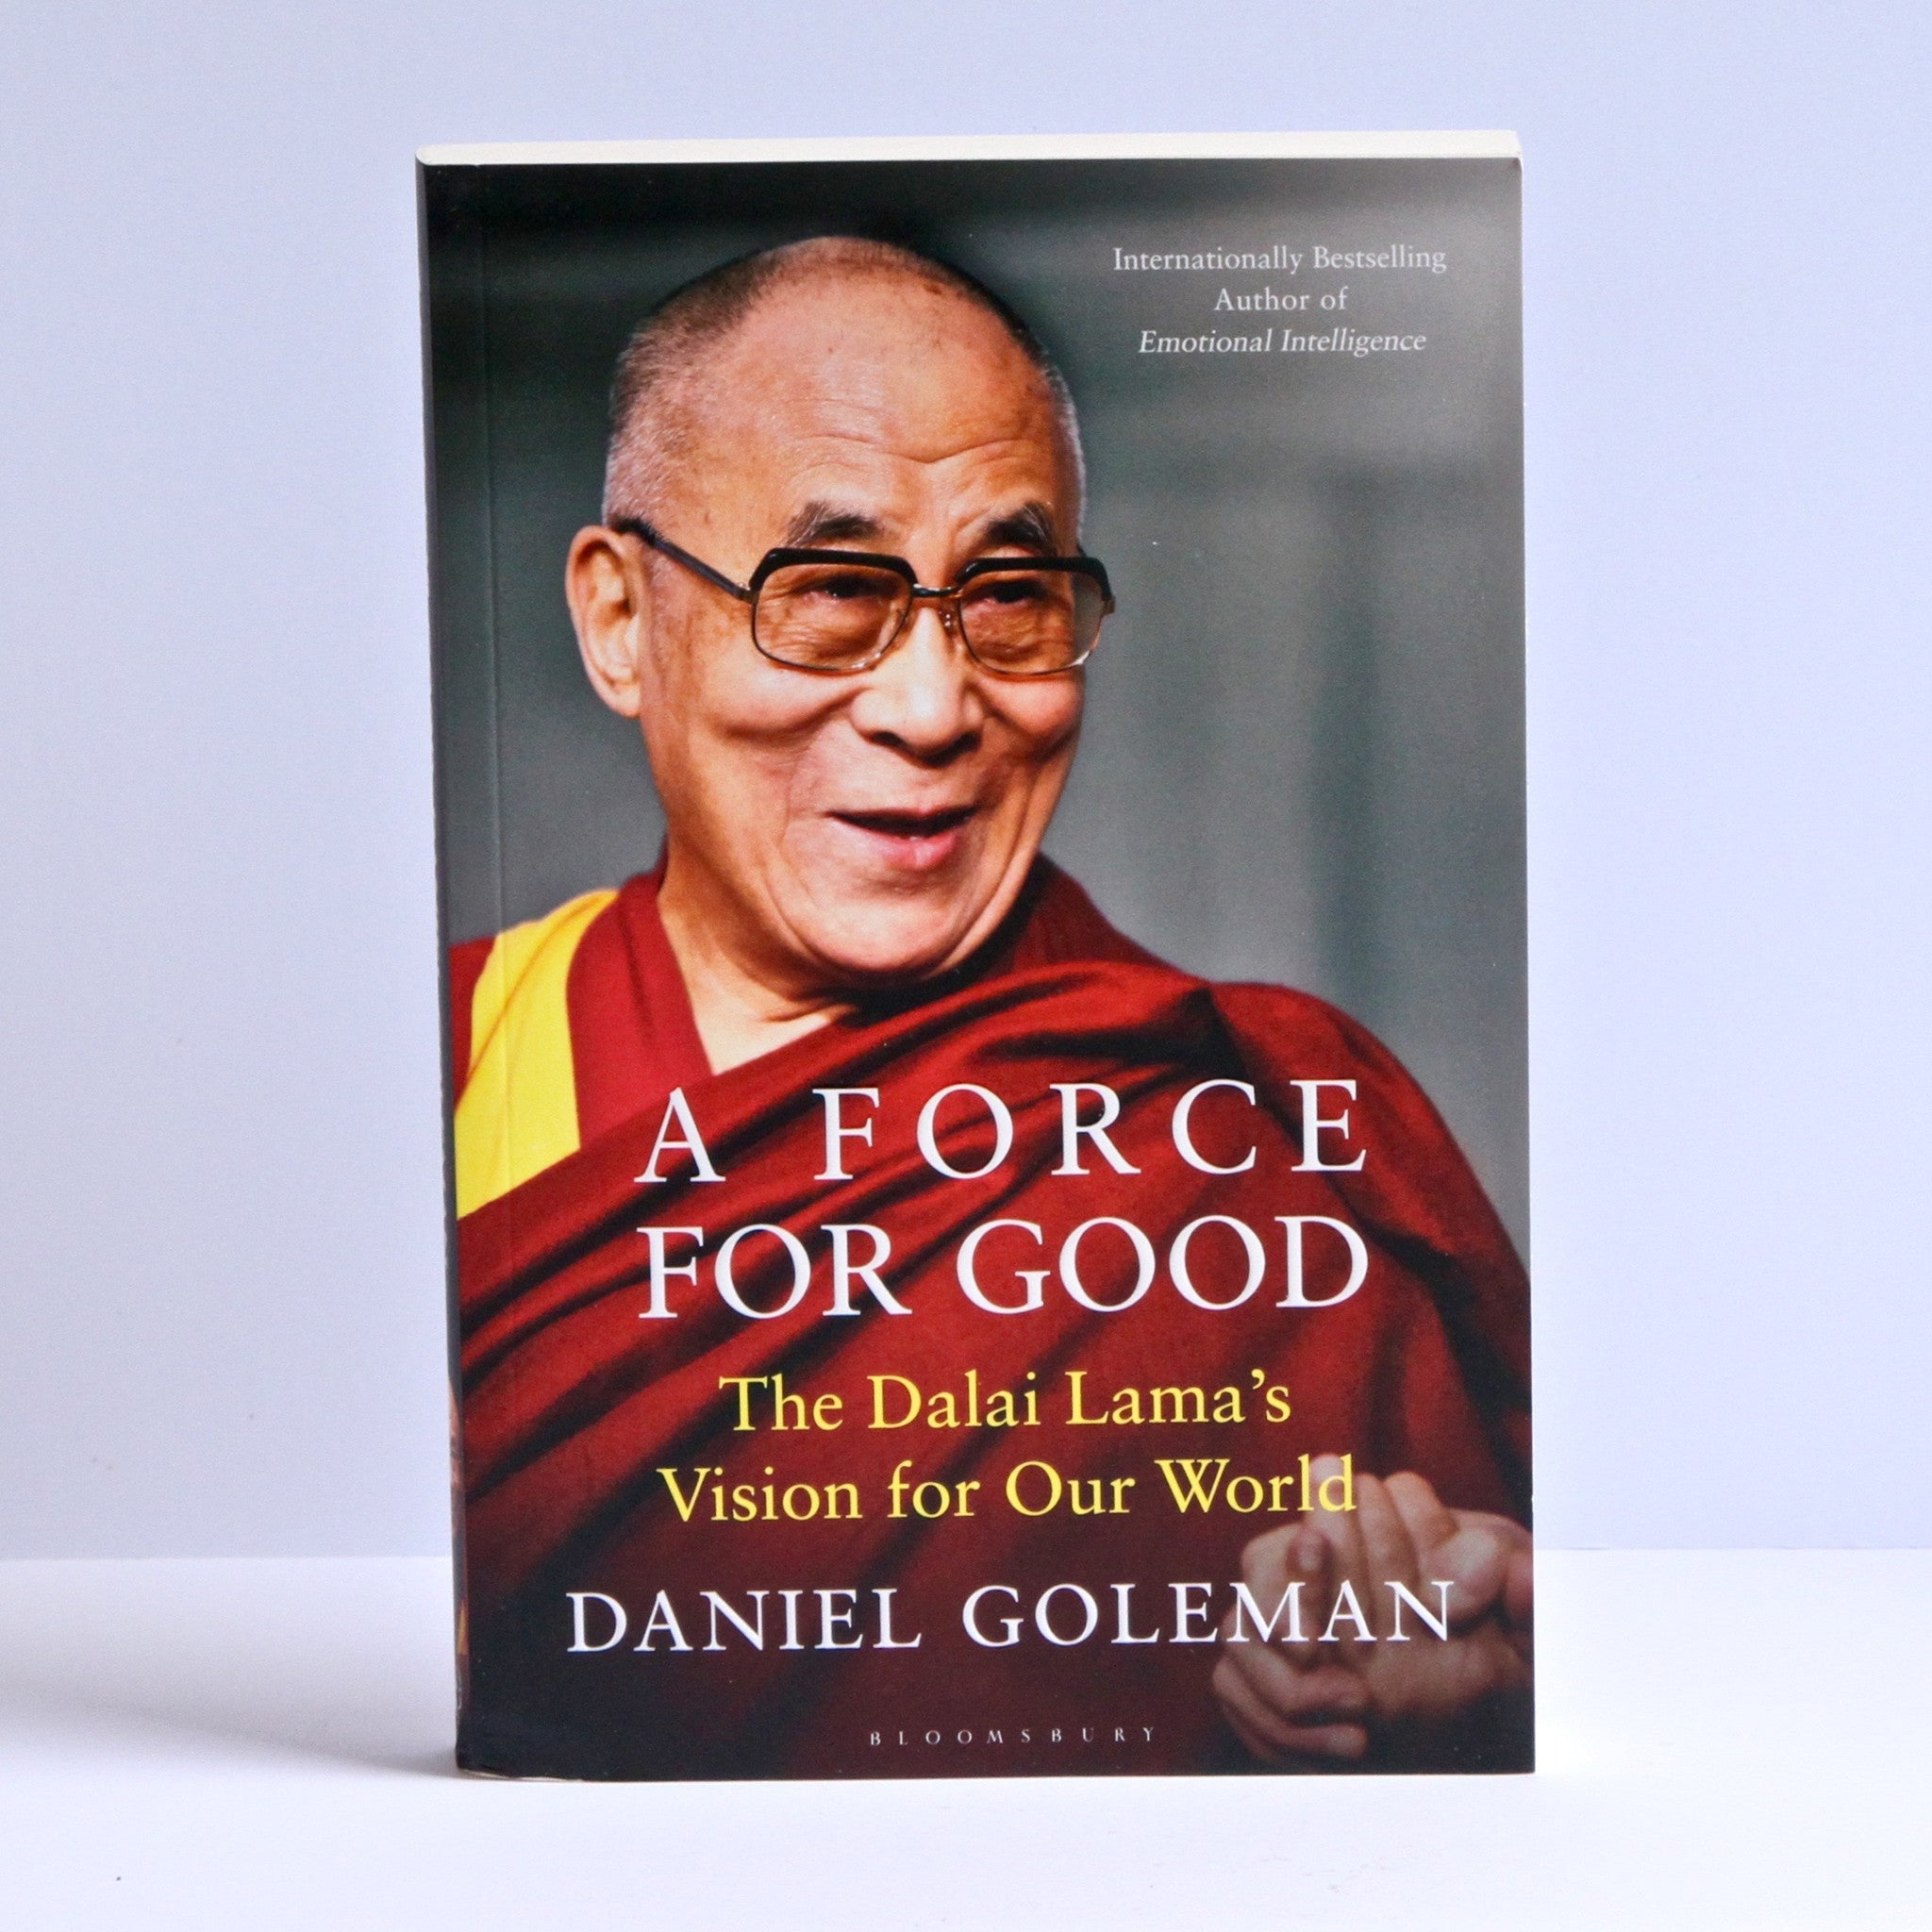 A Force for Good - The Dalai Lama's Vision for Our World. By: Daniel Goodman